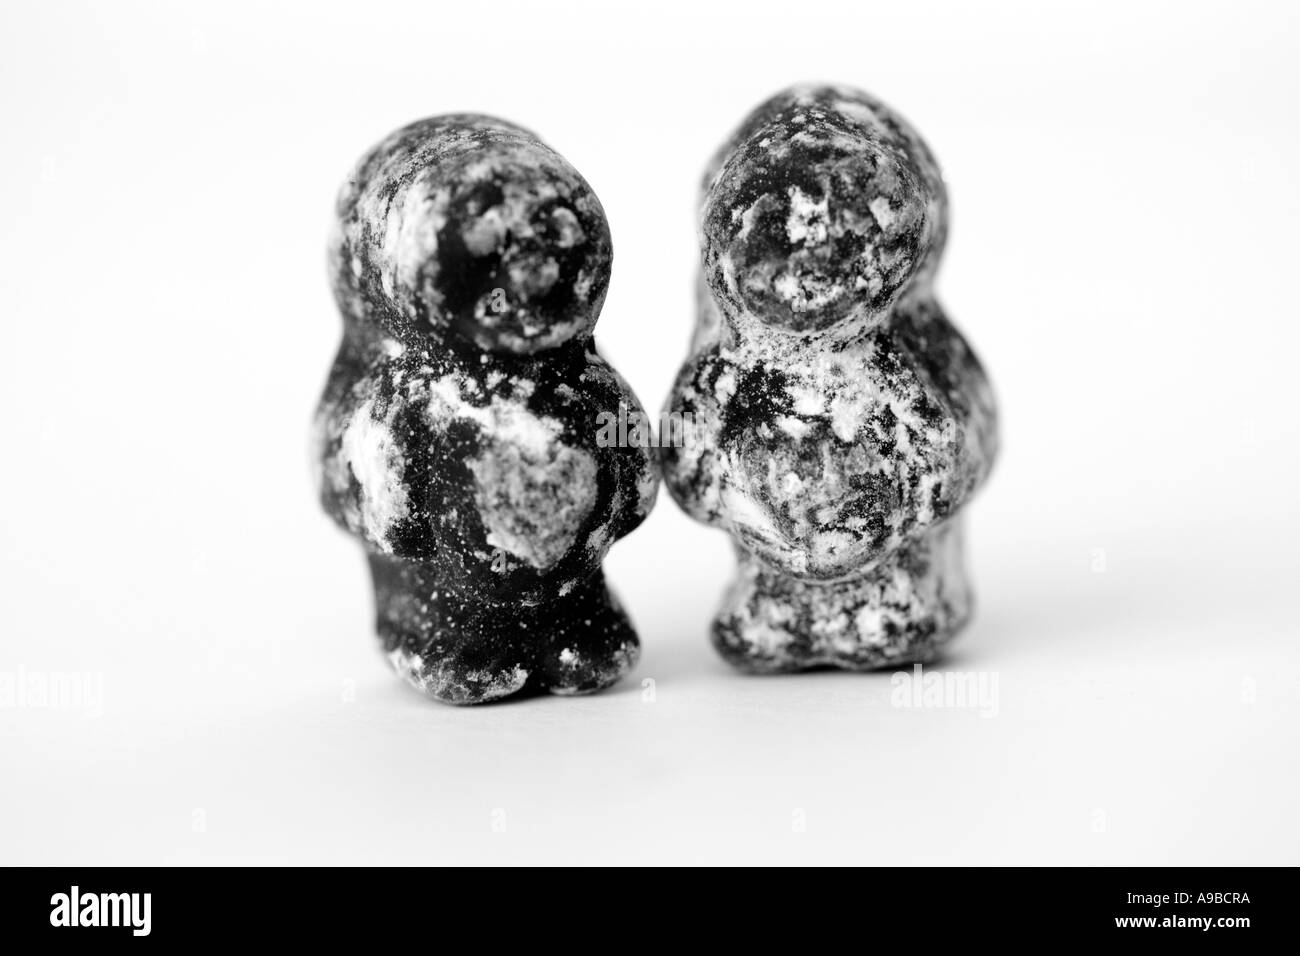 Two black jelly babies - Stock Image